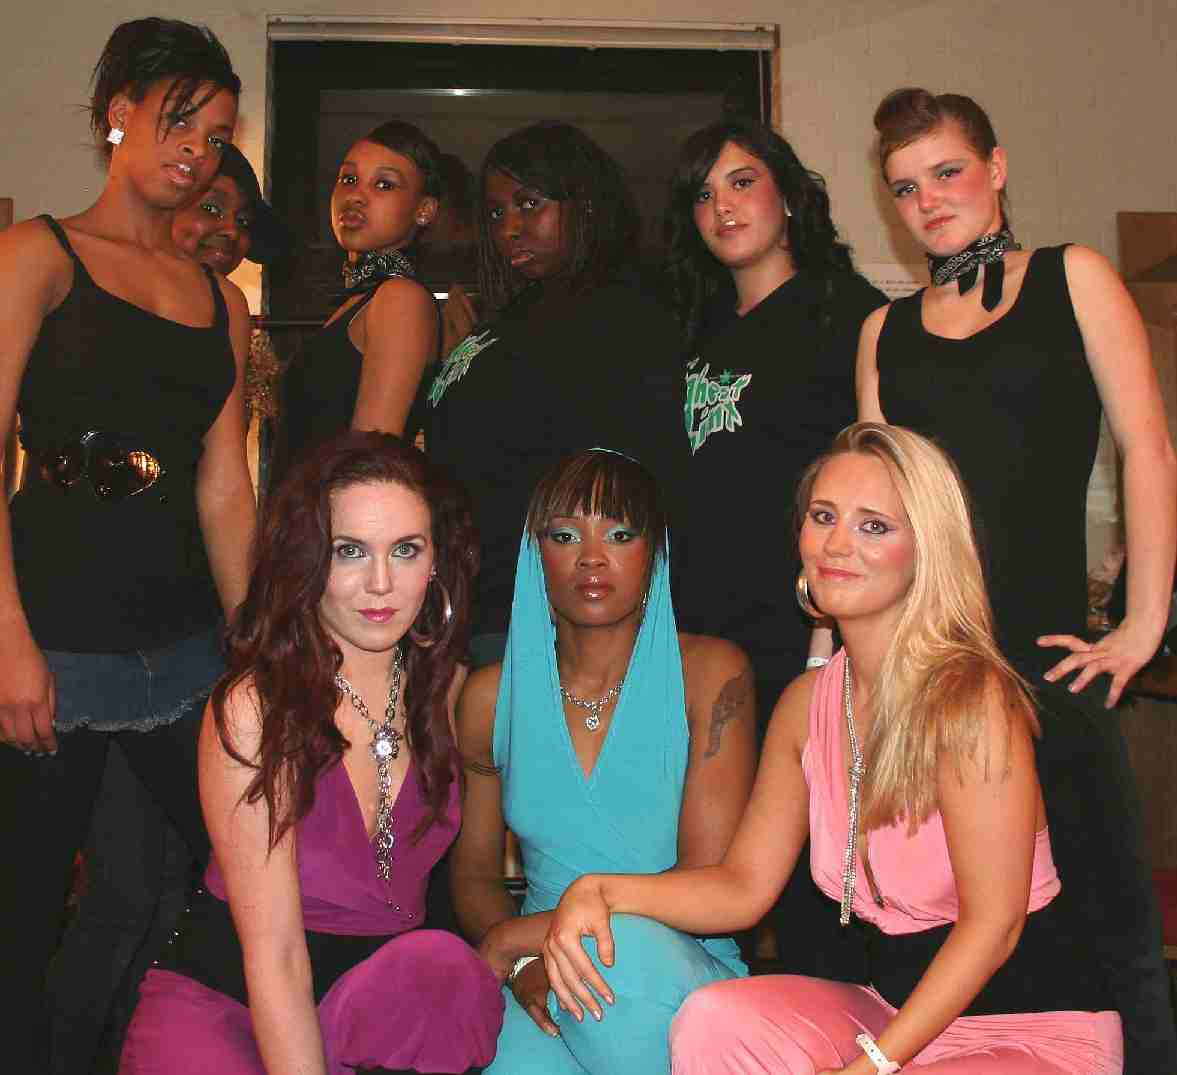 The Kismet Girls and backing dancers in the dressing room at the Hackney Empire theatre, London